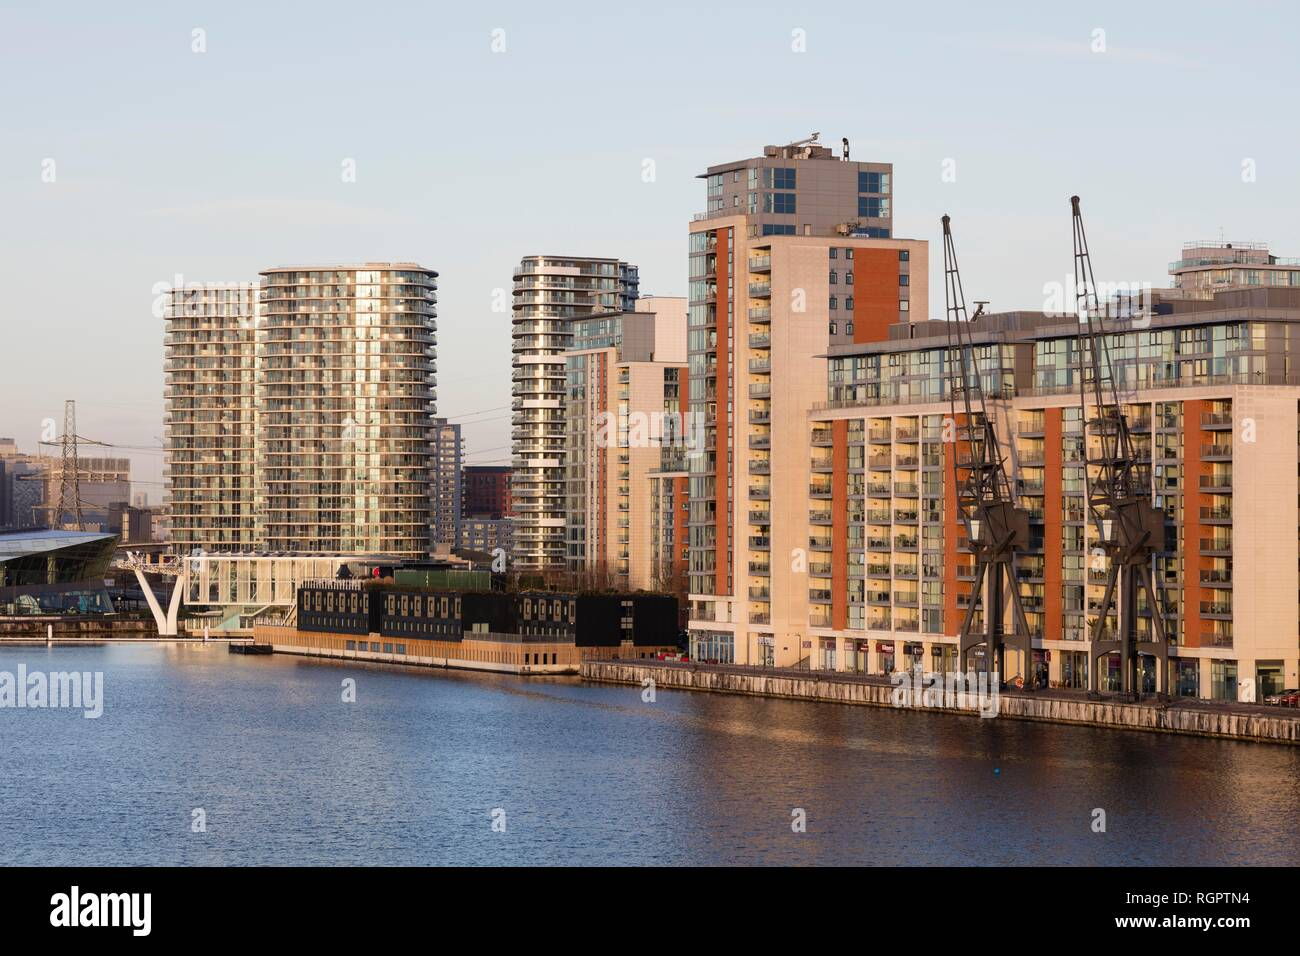 Modern residential and office buildings, Docklands, London, England, United Kingdom - Stock Image